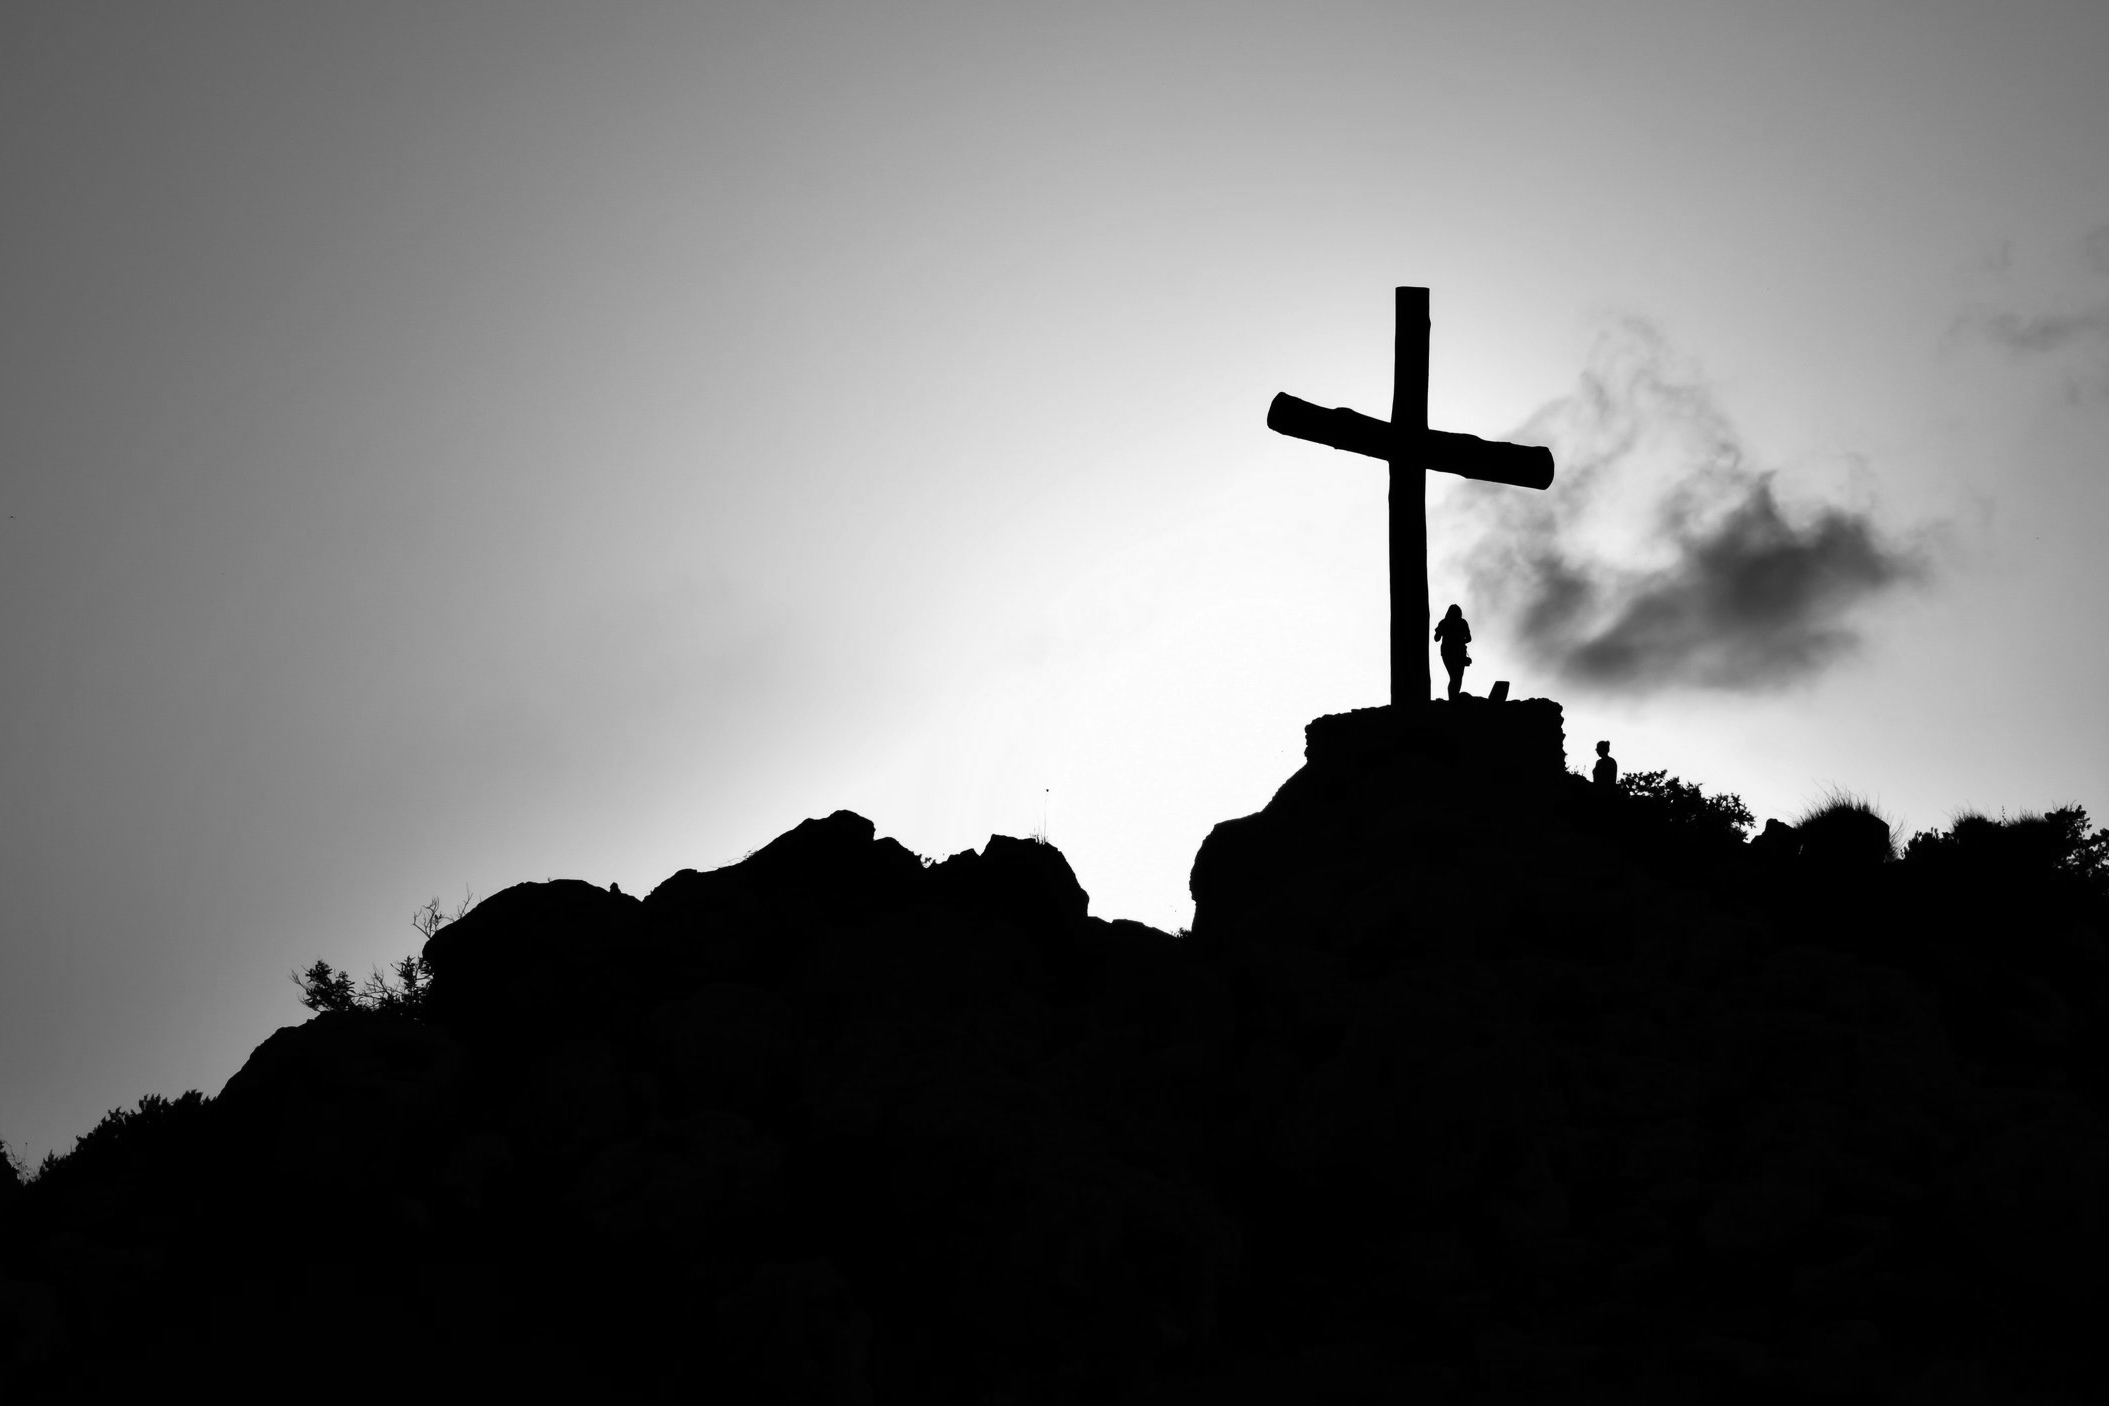 backlit-cemetery-christianity-415571.jpg